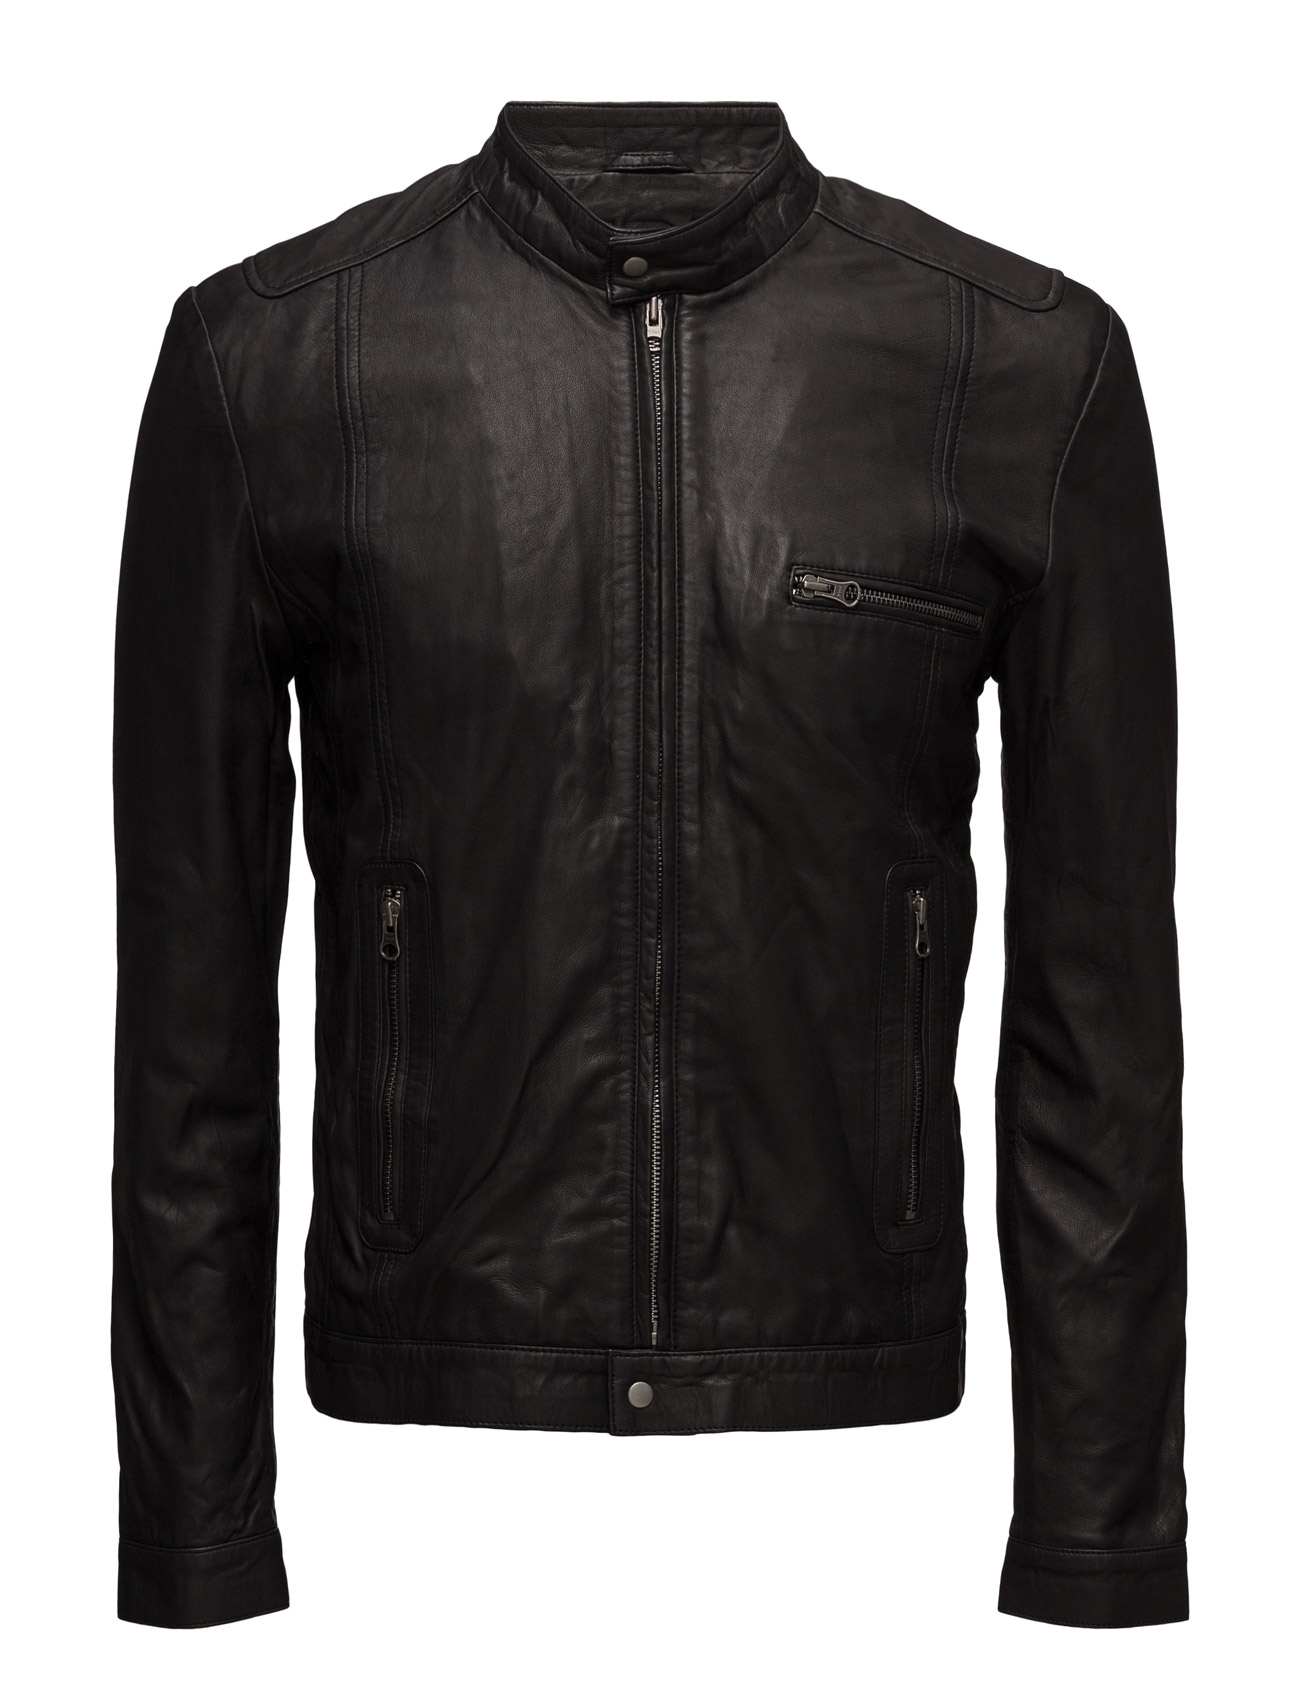 Karl Leather Jacket (Black) MDK / Munderingskompagniet Jakker til Herrer i Sort